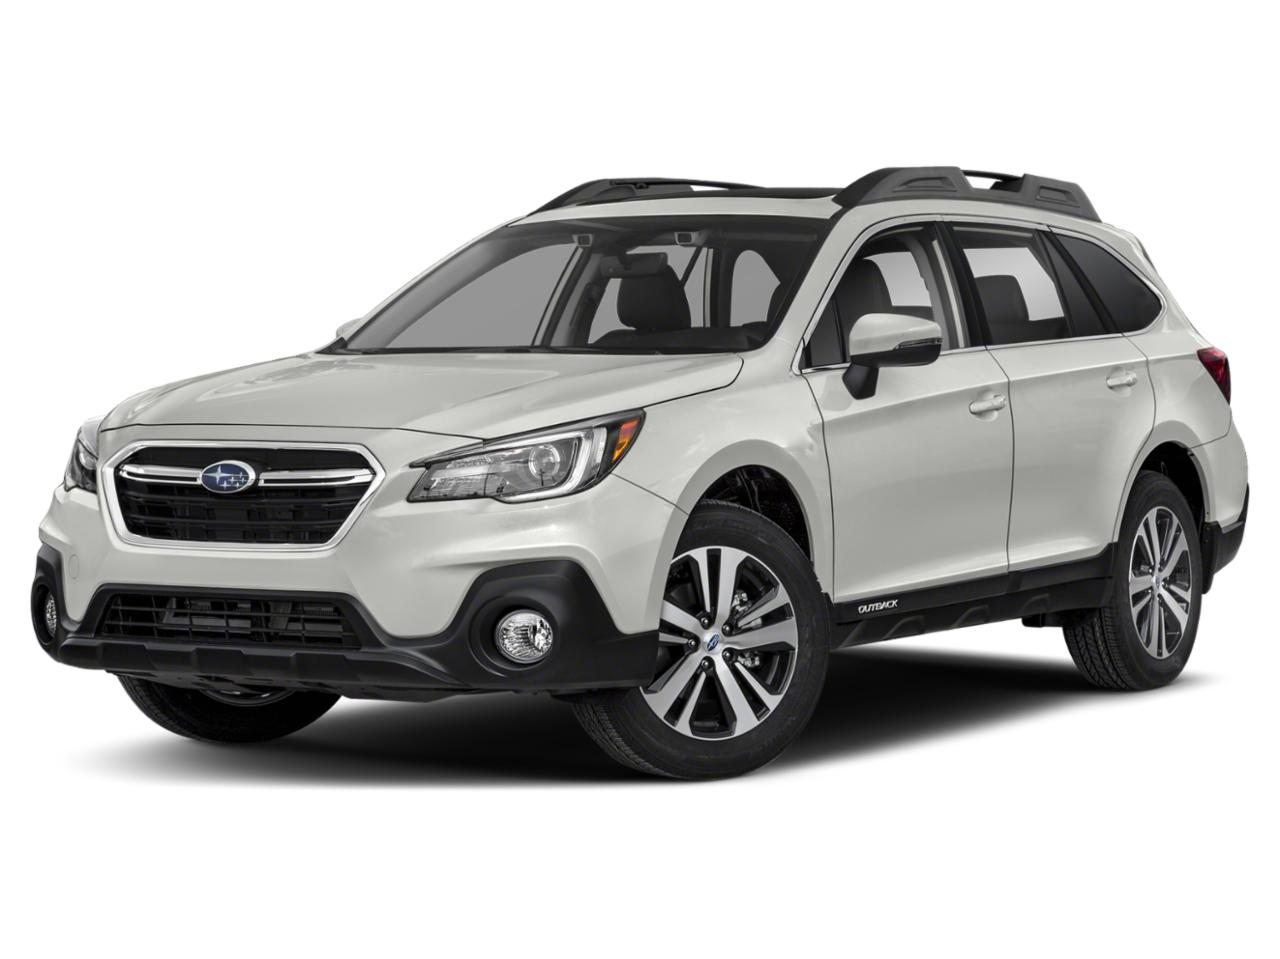 las cruces used subaru outback 2018 vehicles for sale bravo chevrolet bravo chevrolet